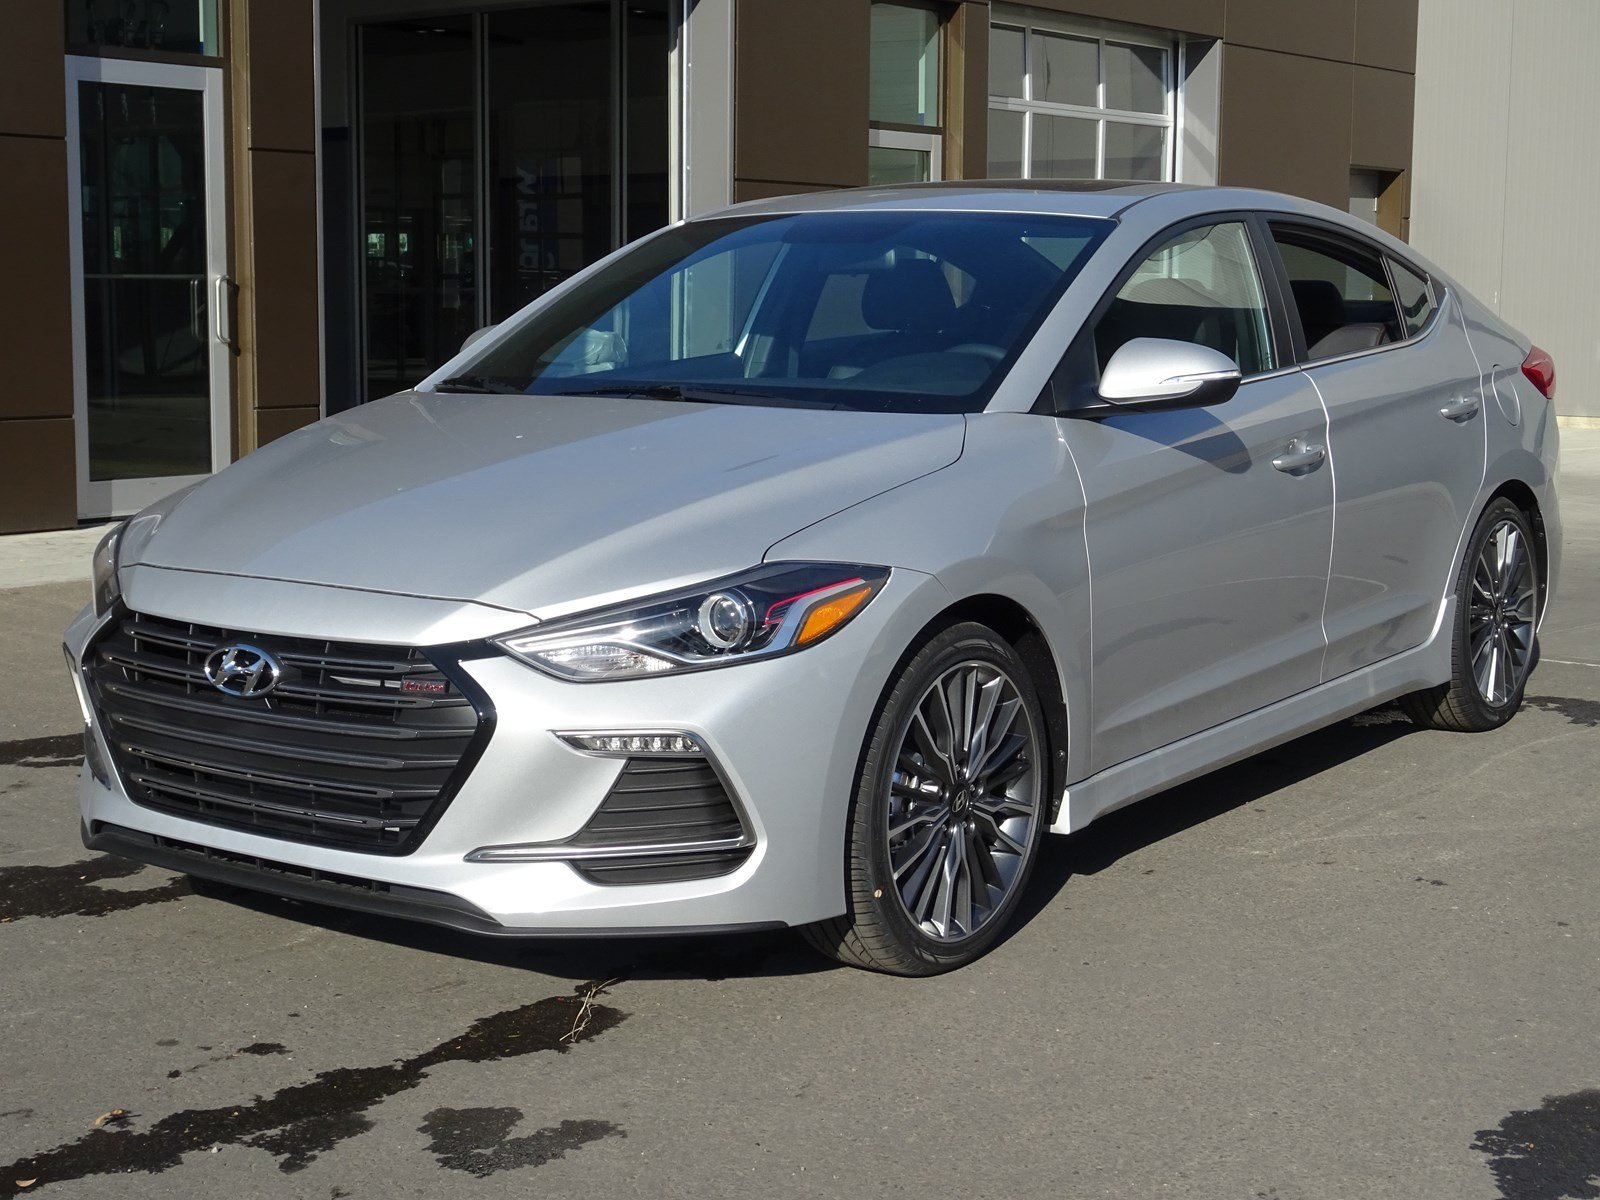 new 2018 hyundai elantra 4dr car in edmonton jel4373 river city hyundai. Black Bedroom Furniture Sets. Home Design Ideas